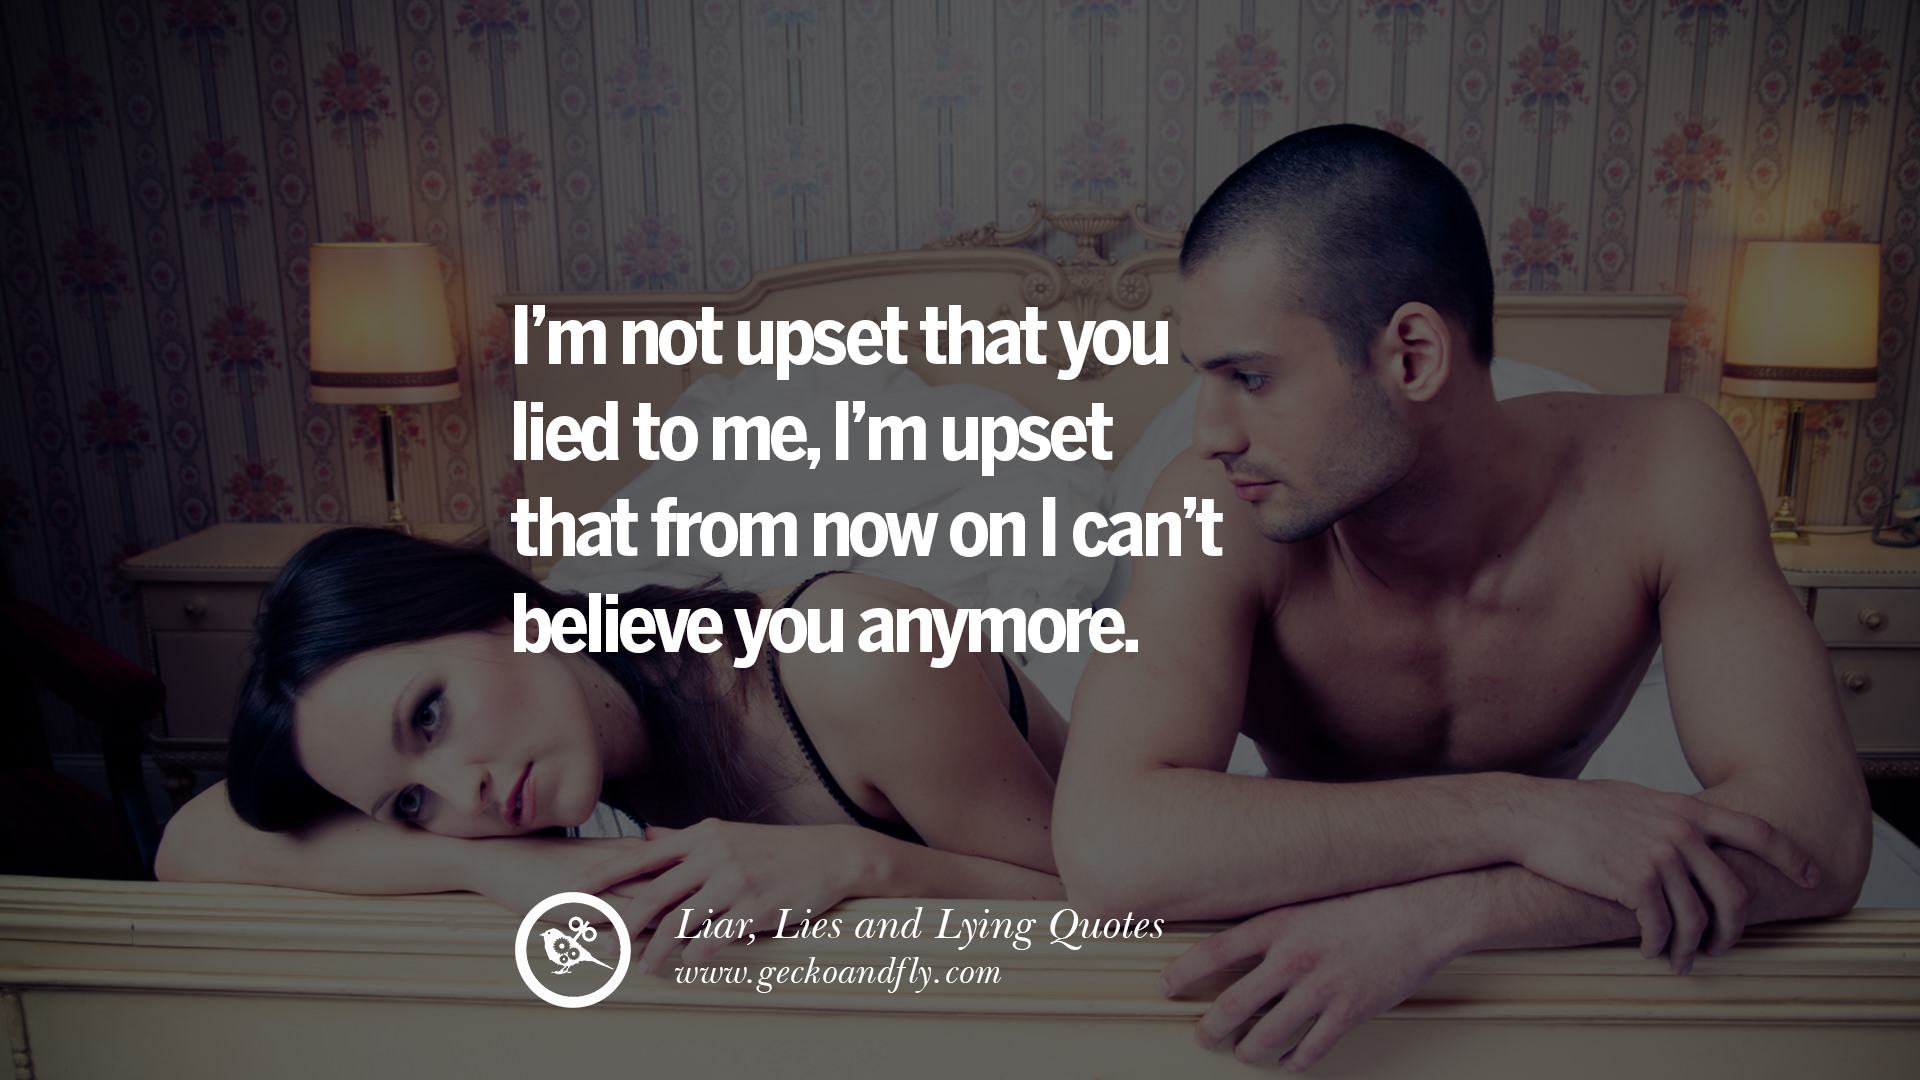 liar quotes in relationship